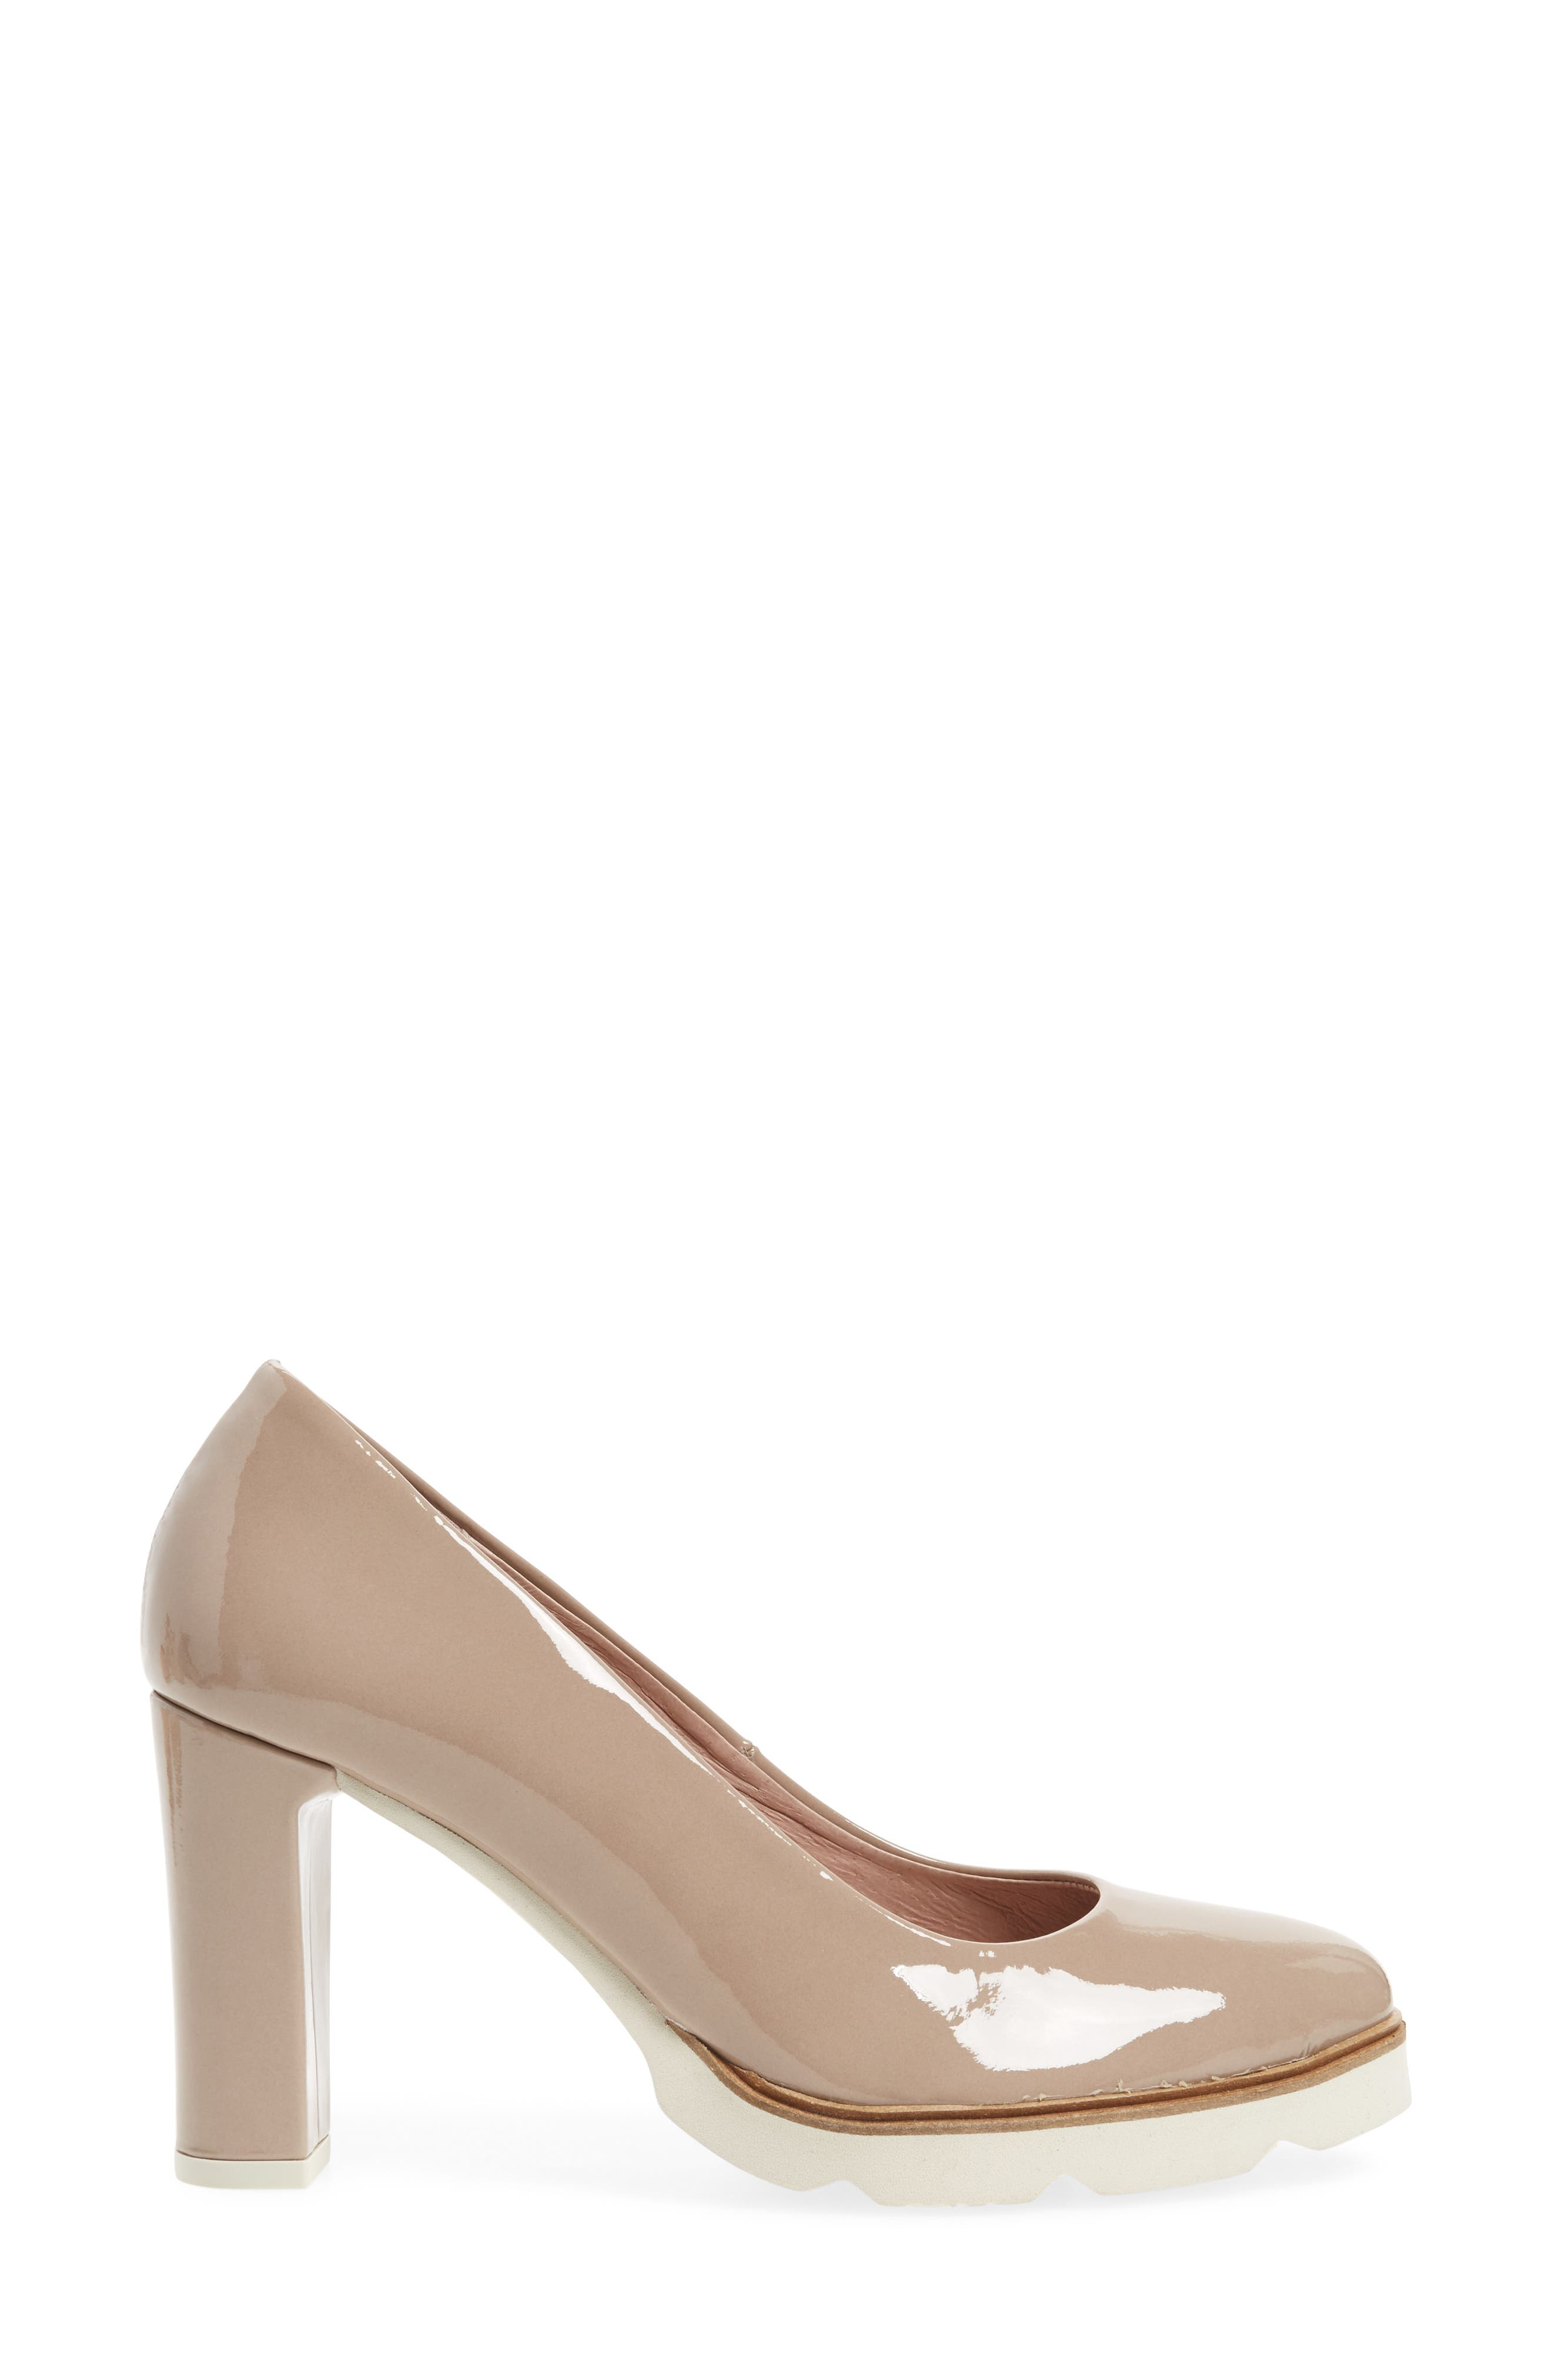 Almond Toe Pump,                             Alternate thumbnail 3, color,                             Taupe Leather